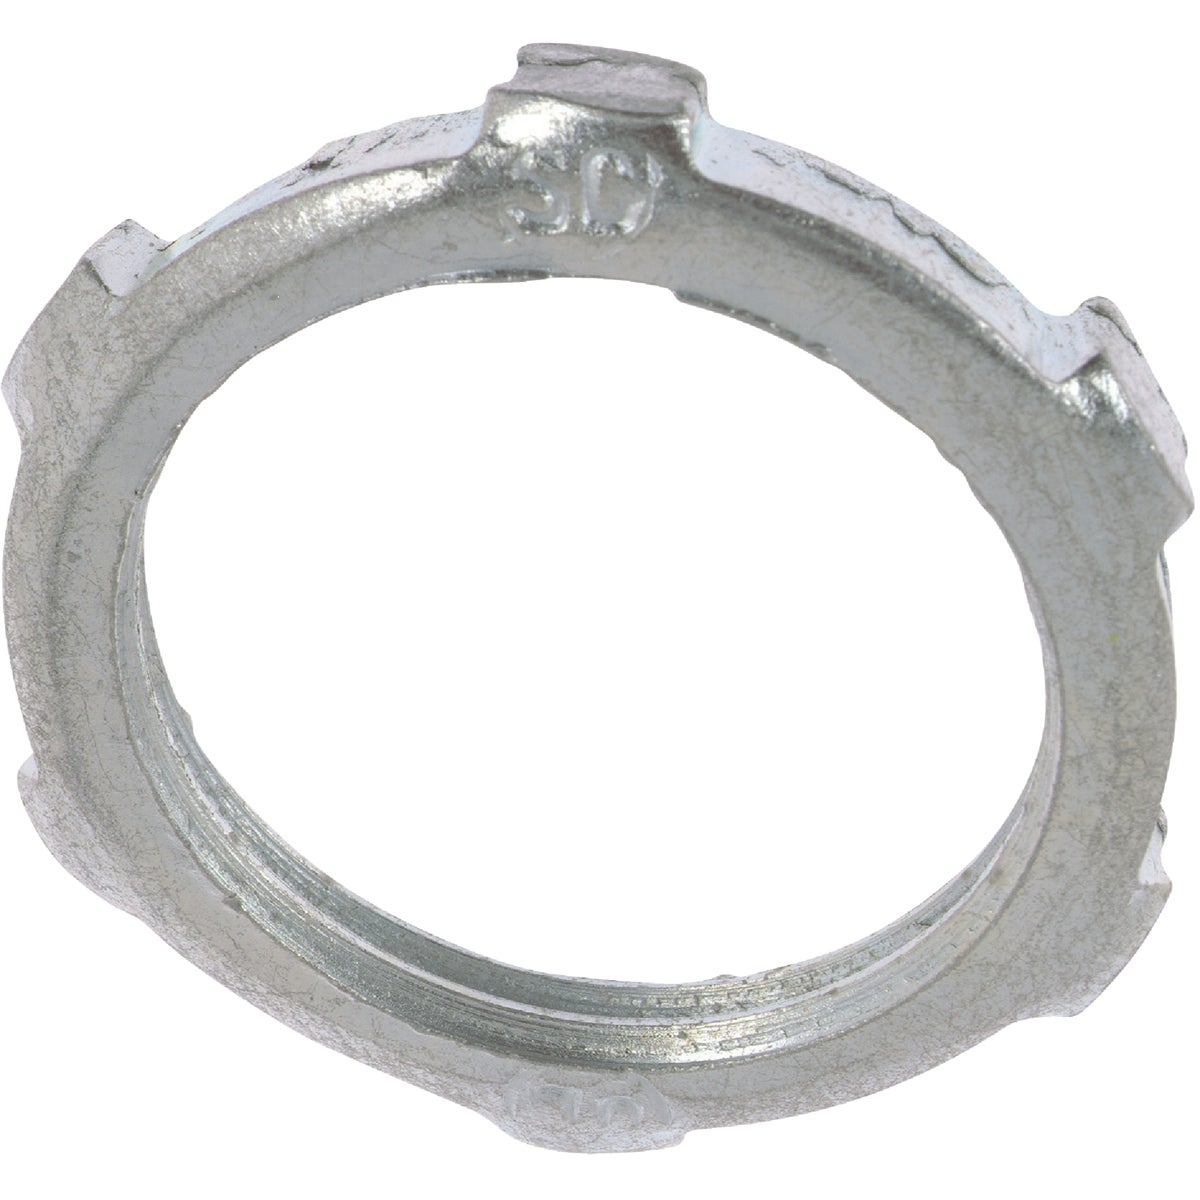 "2PK 2"" LOCKNUT - LN1062 by Thomas & Betts"